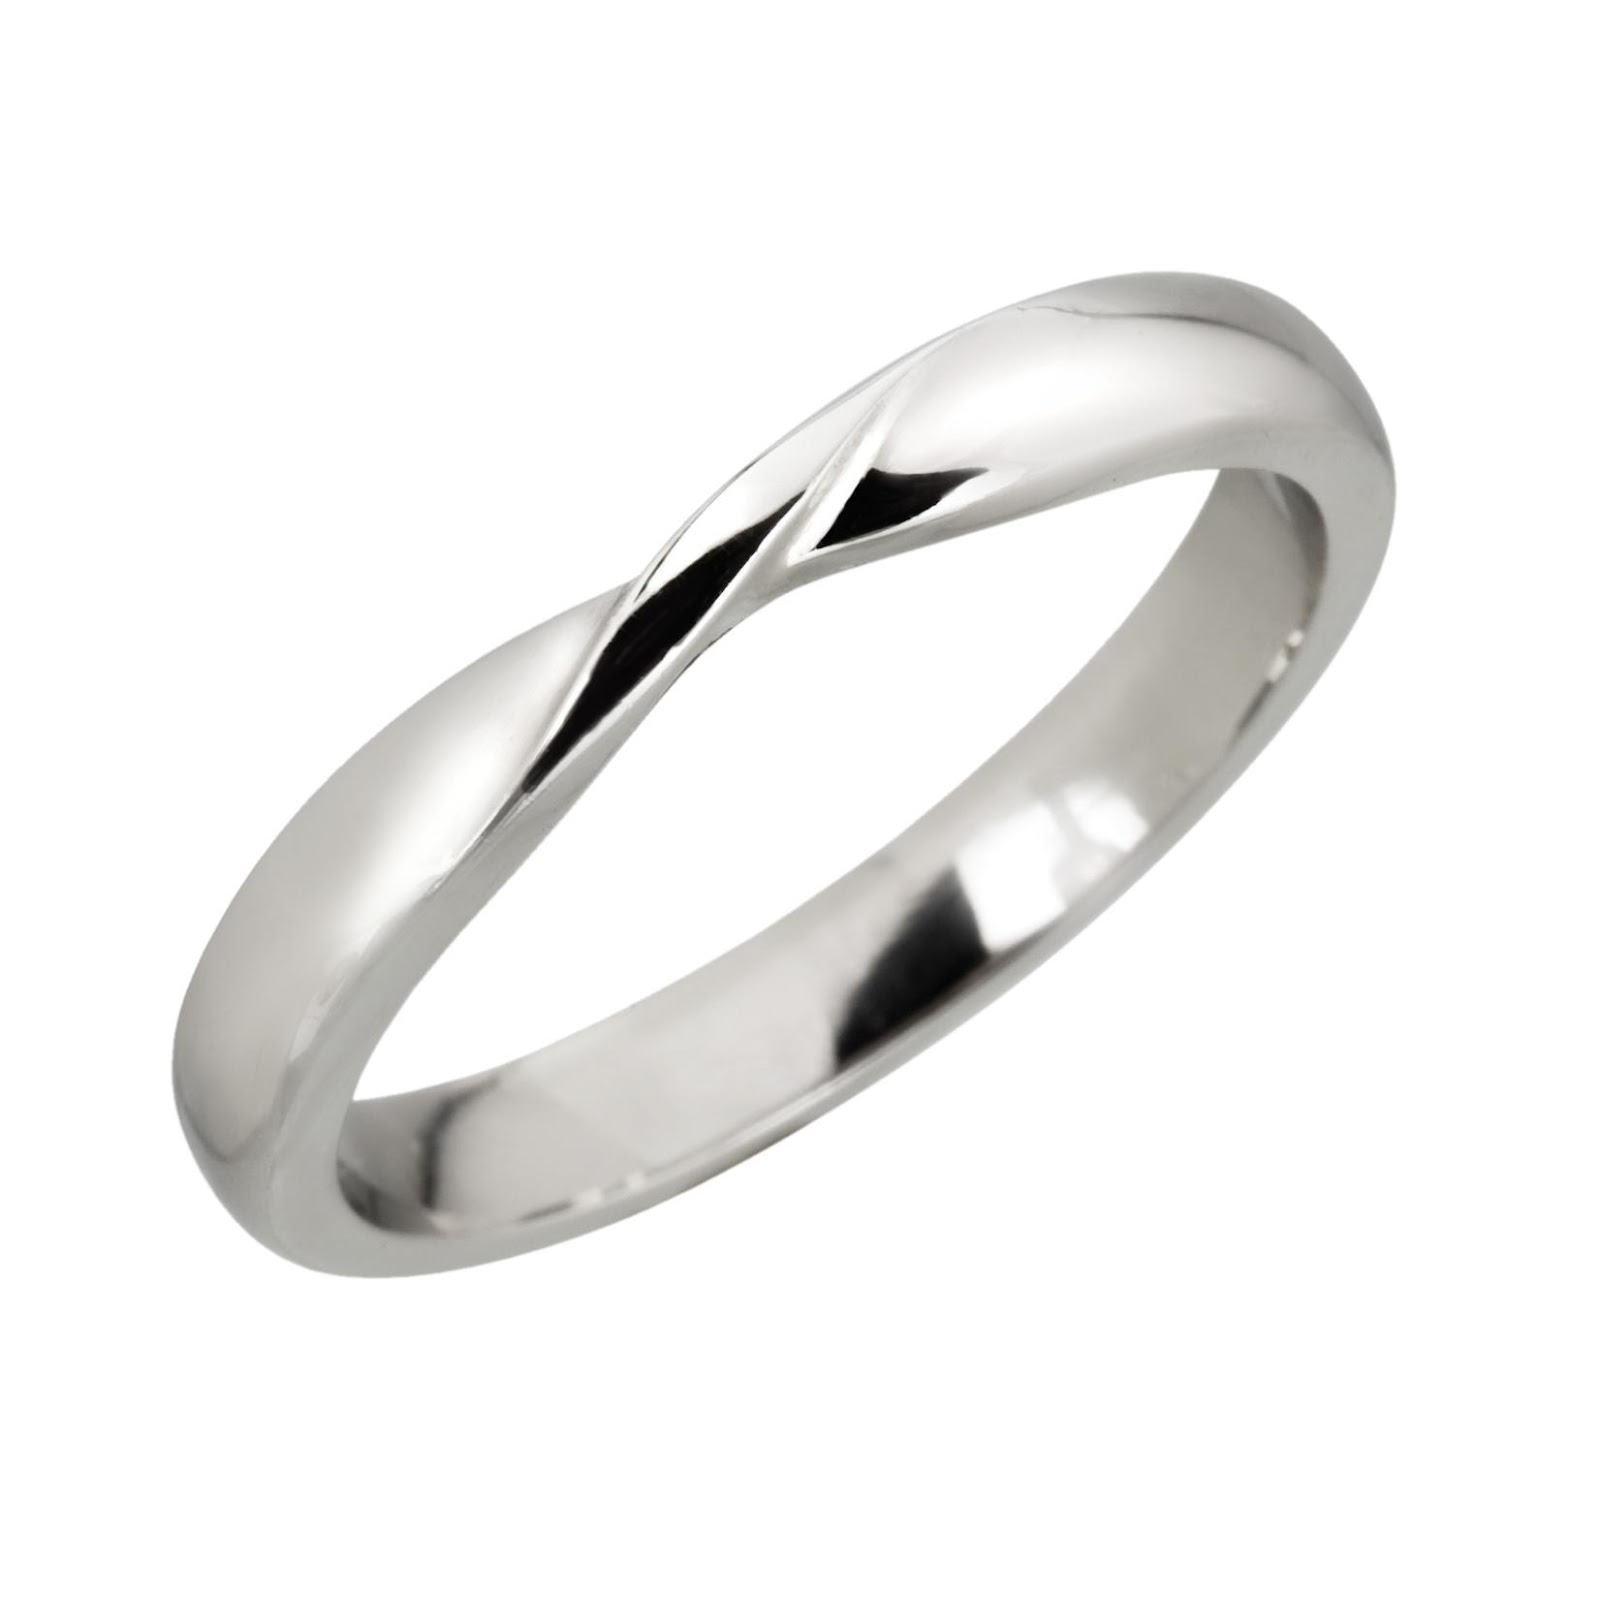 Fitted wedding rings